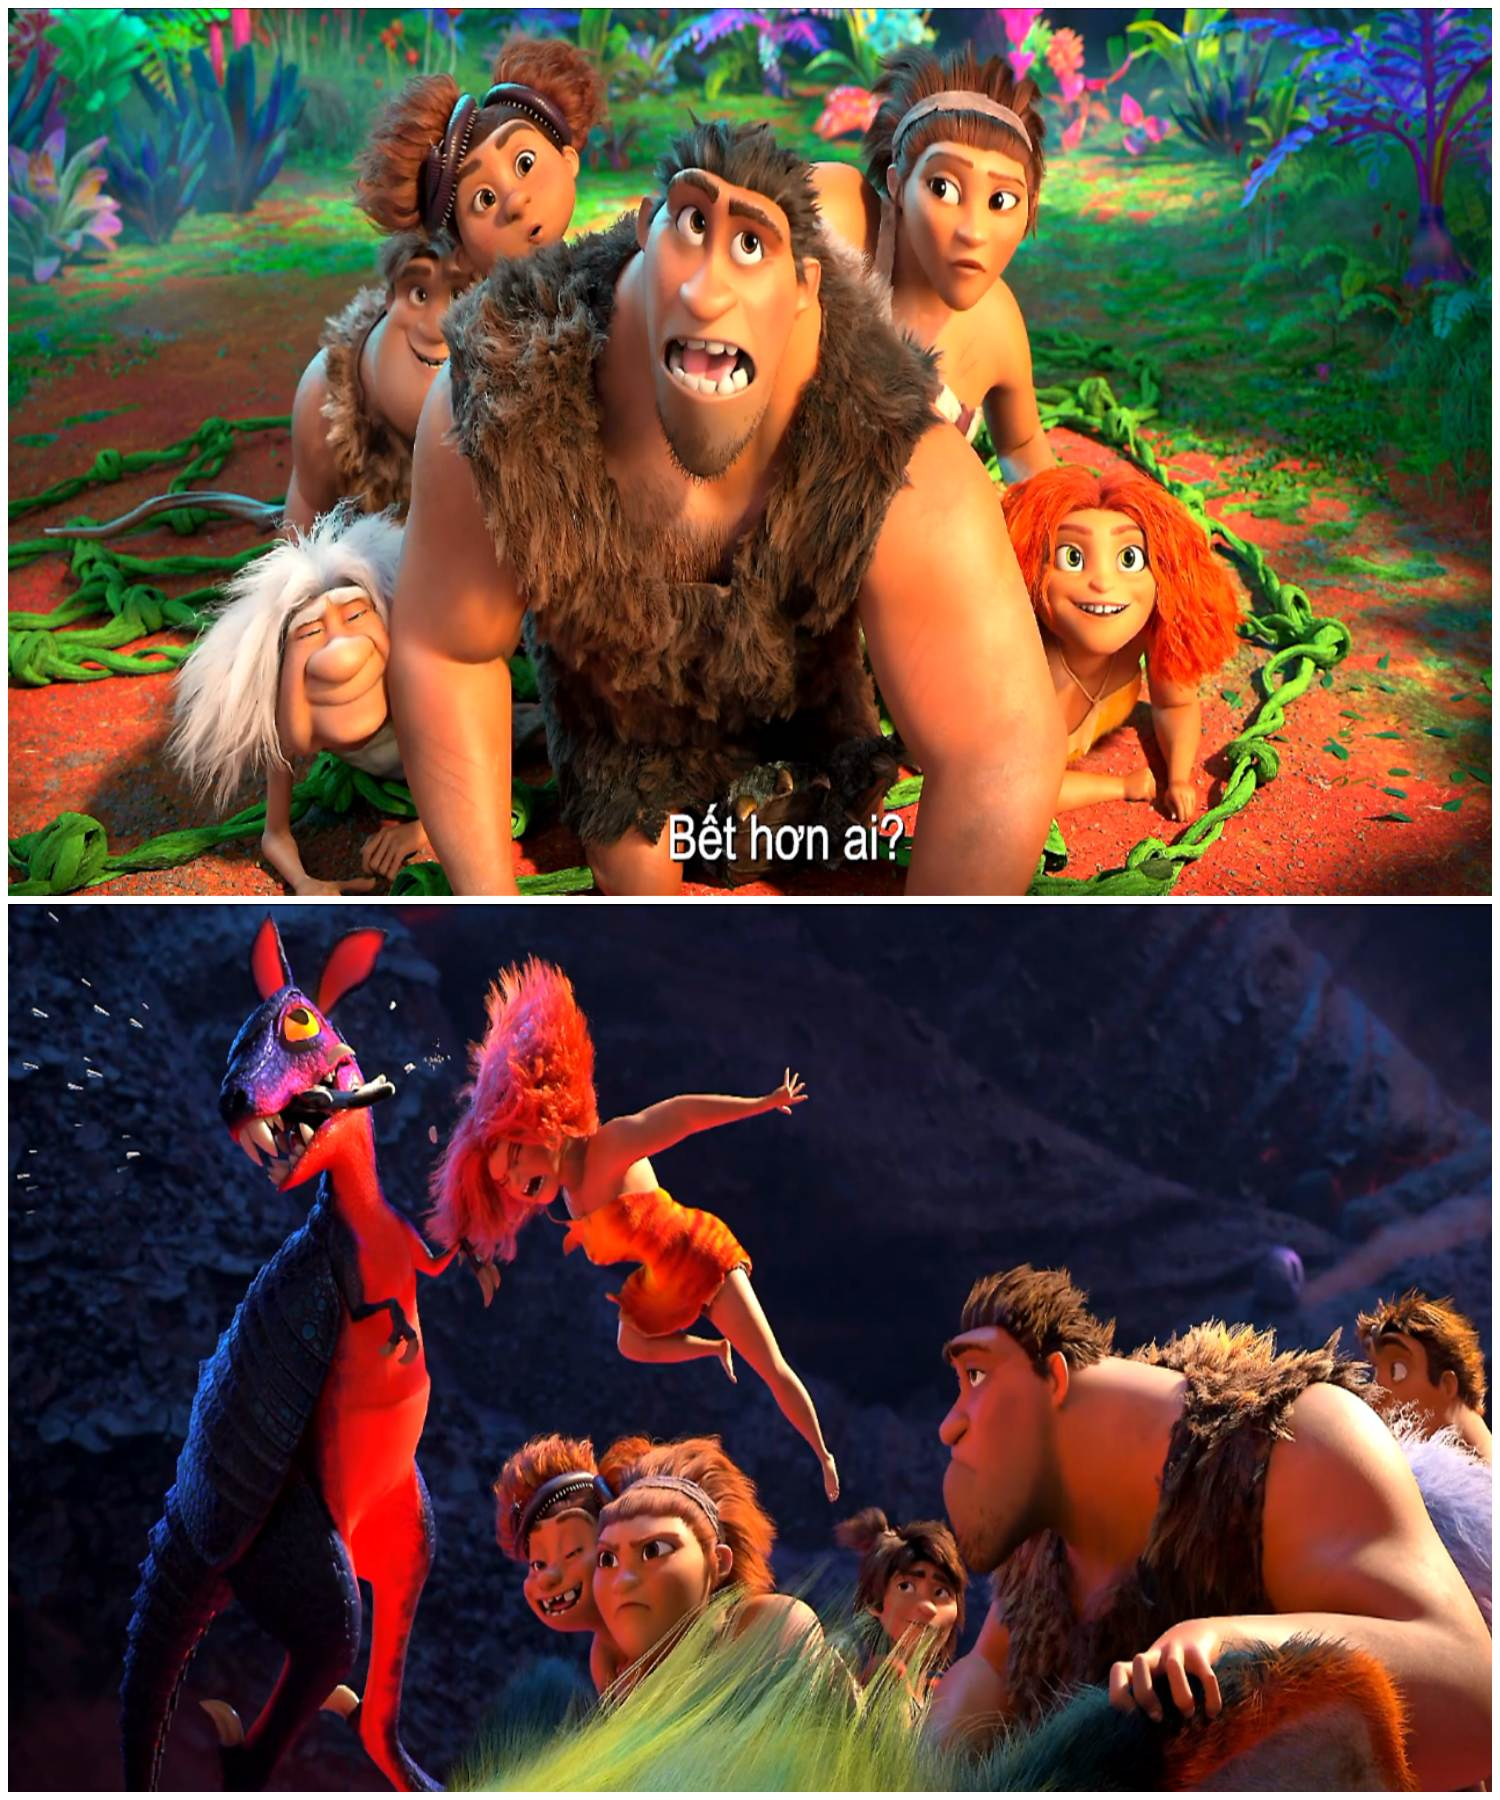 Gia-dinh-Croods-ky-nguyen-moi-01